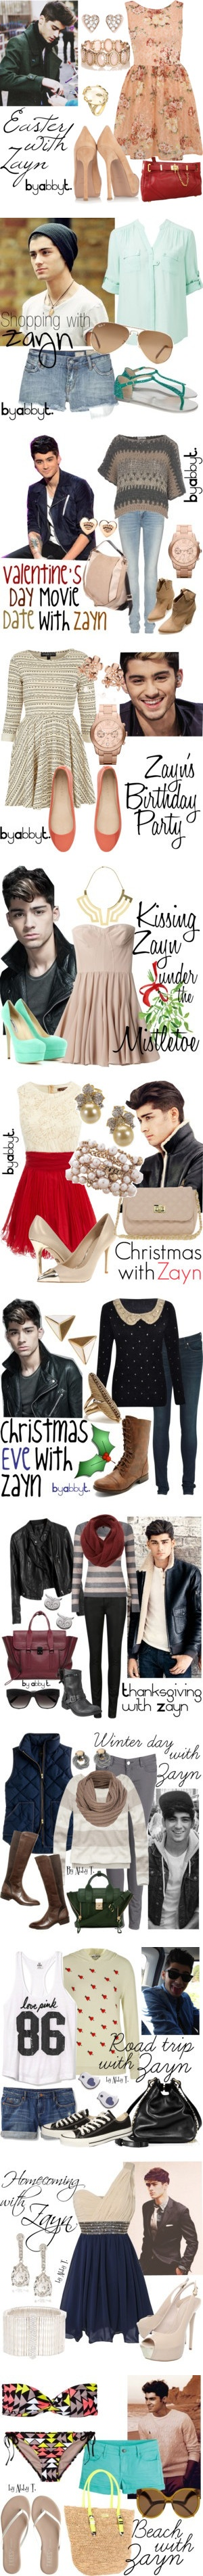 """Zayn Malik Inspired Fashion"" by abbytamase on Polyvore"